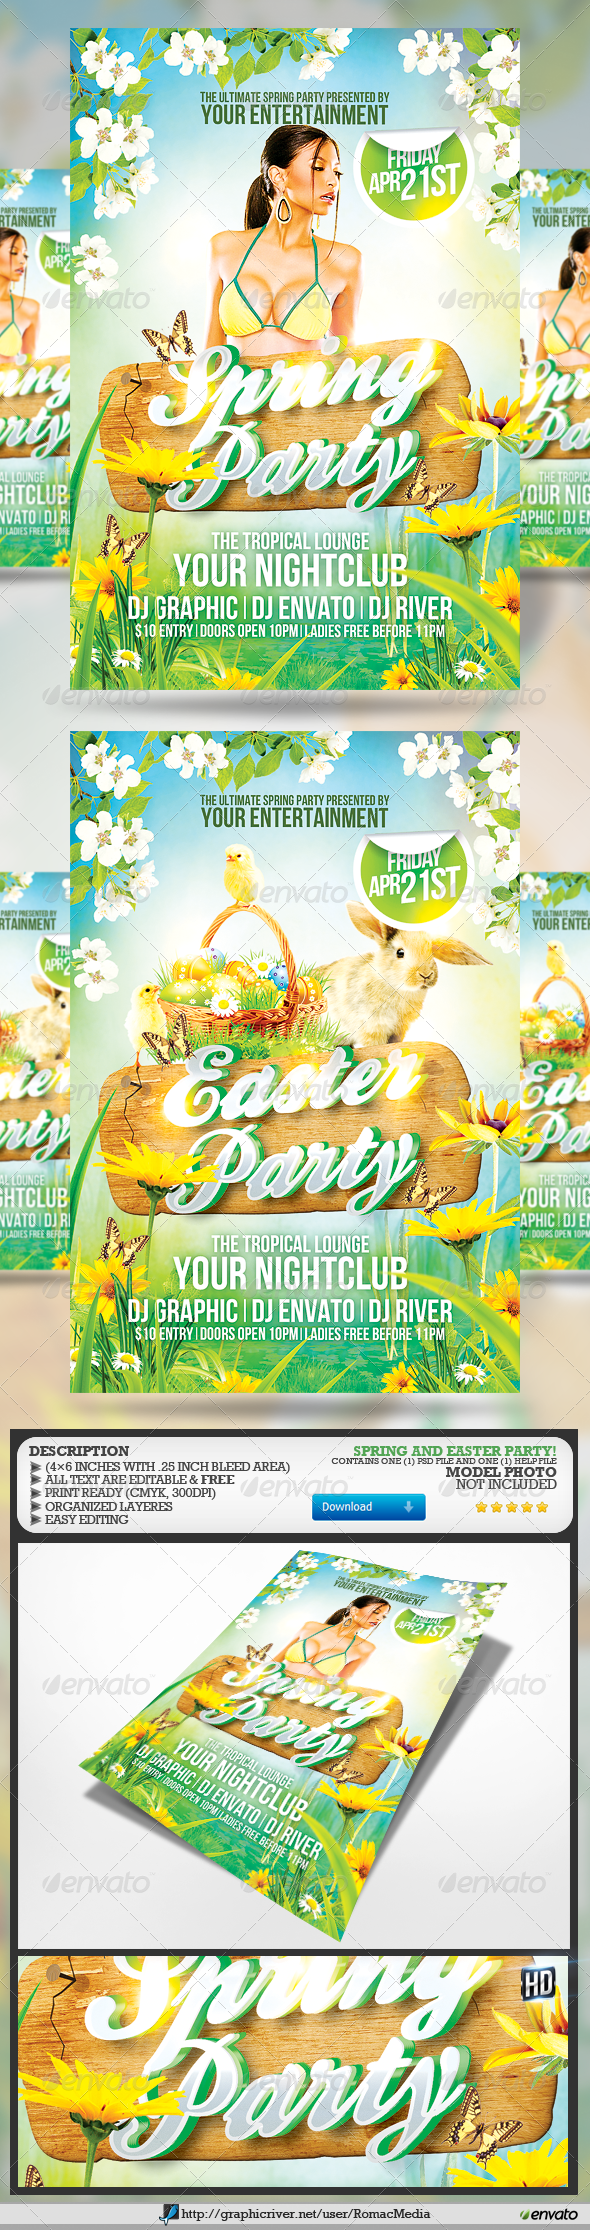 GraphicRiver Spring and Easter Party Flyer 7132490